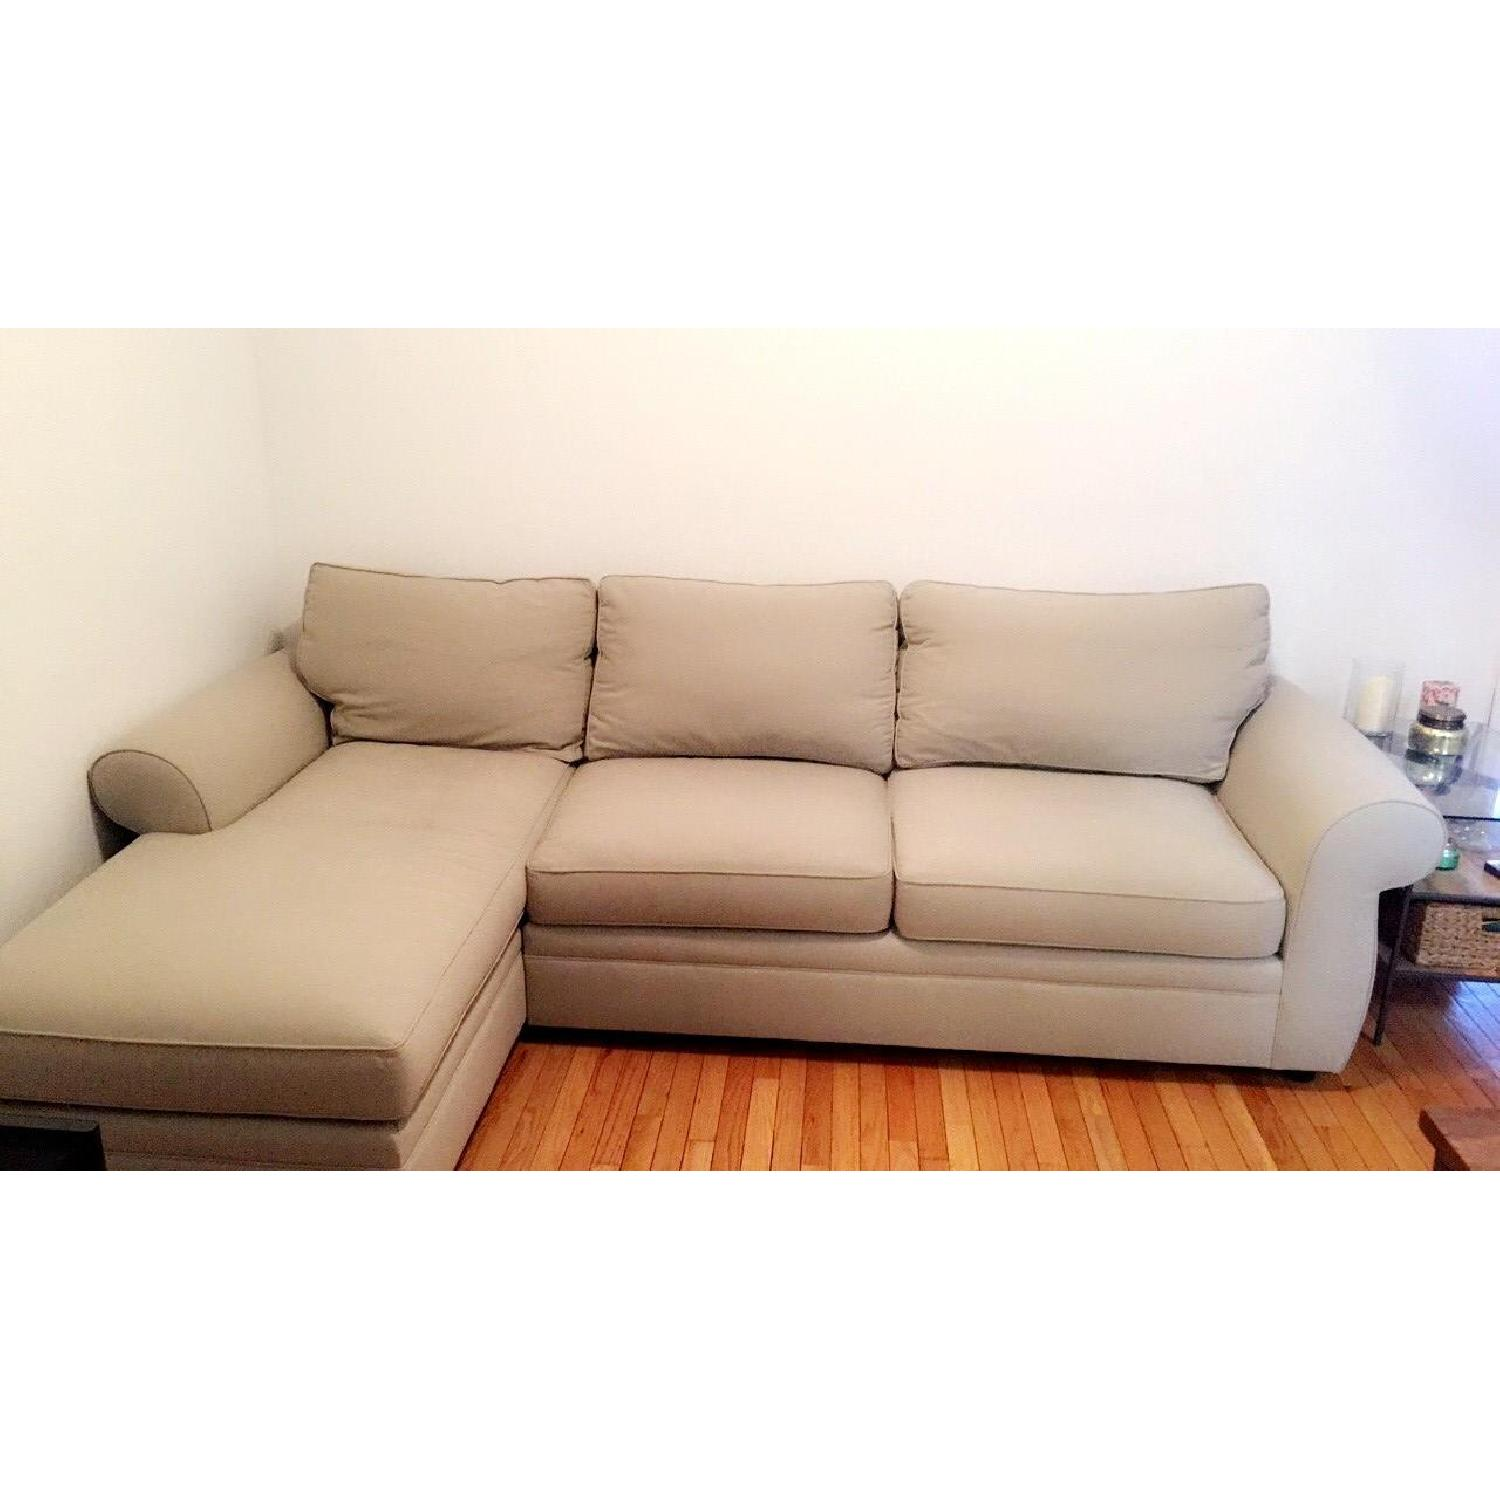 Pottery Barn Townsend 2 Piece Sectional Sofa w/ Chaise ...